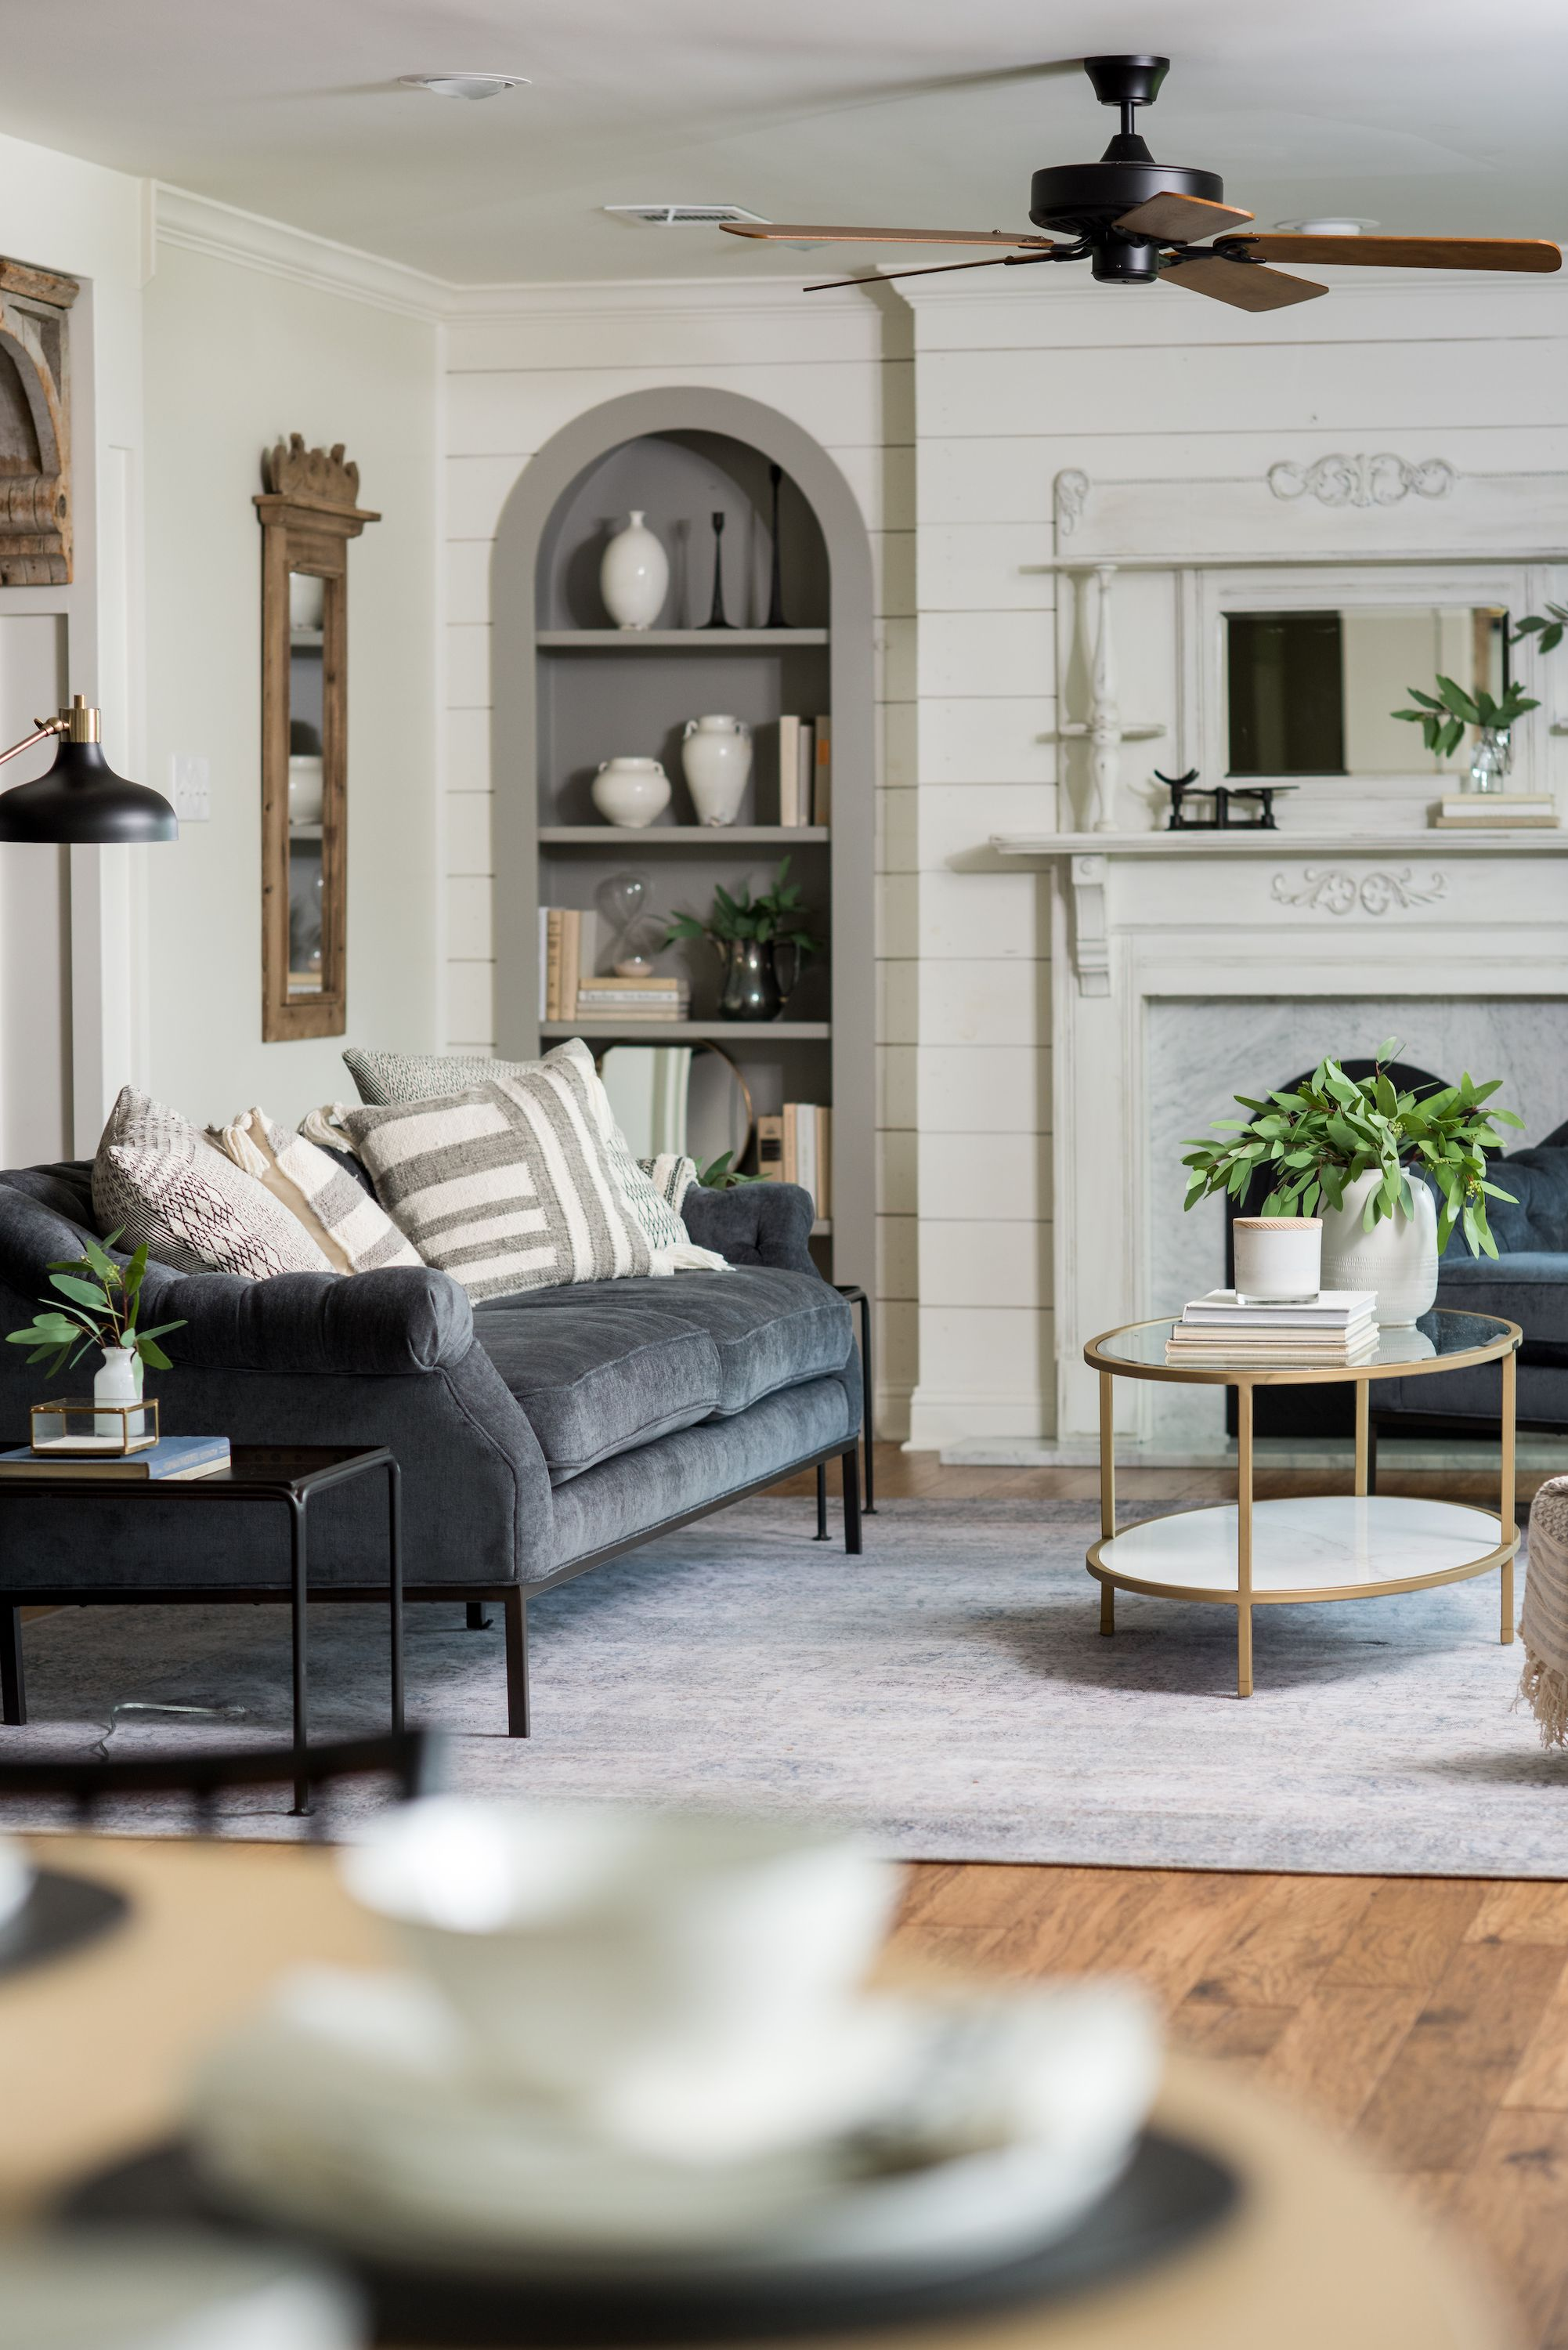 Stay Vacation Rentals Designed By Joanna Gaines Home Decor